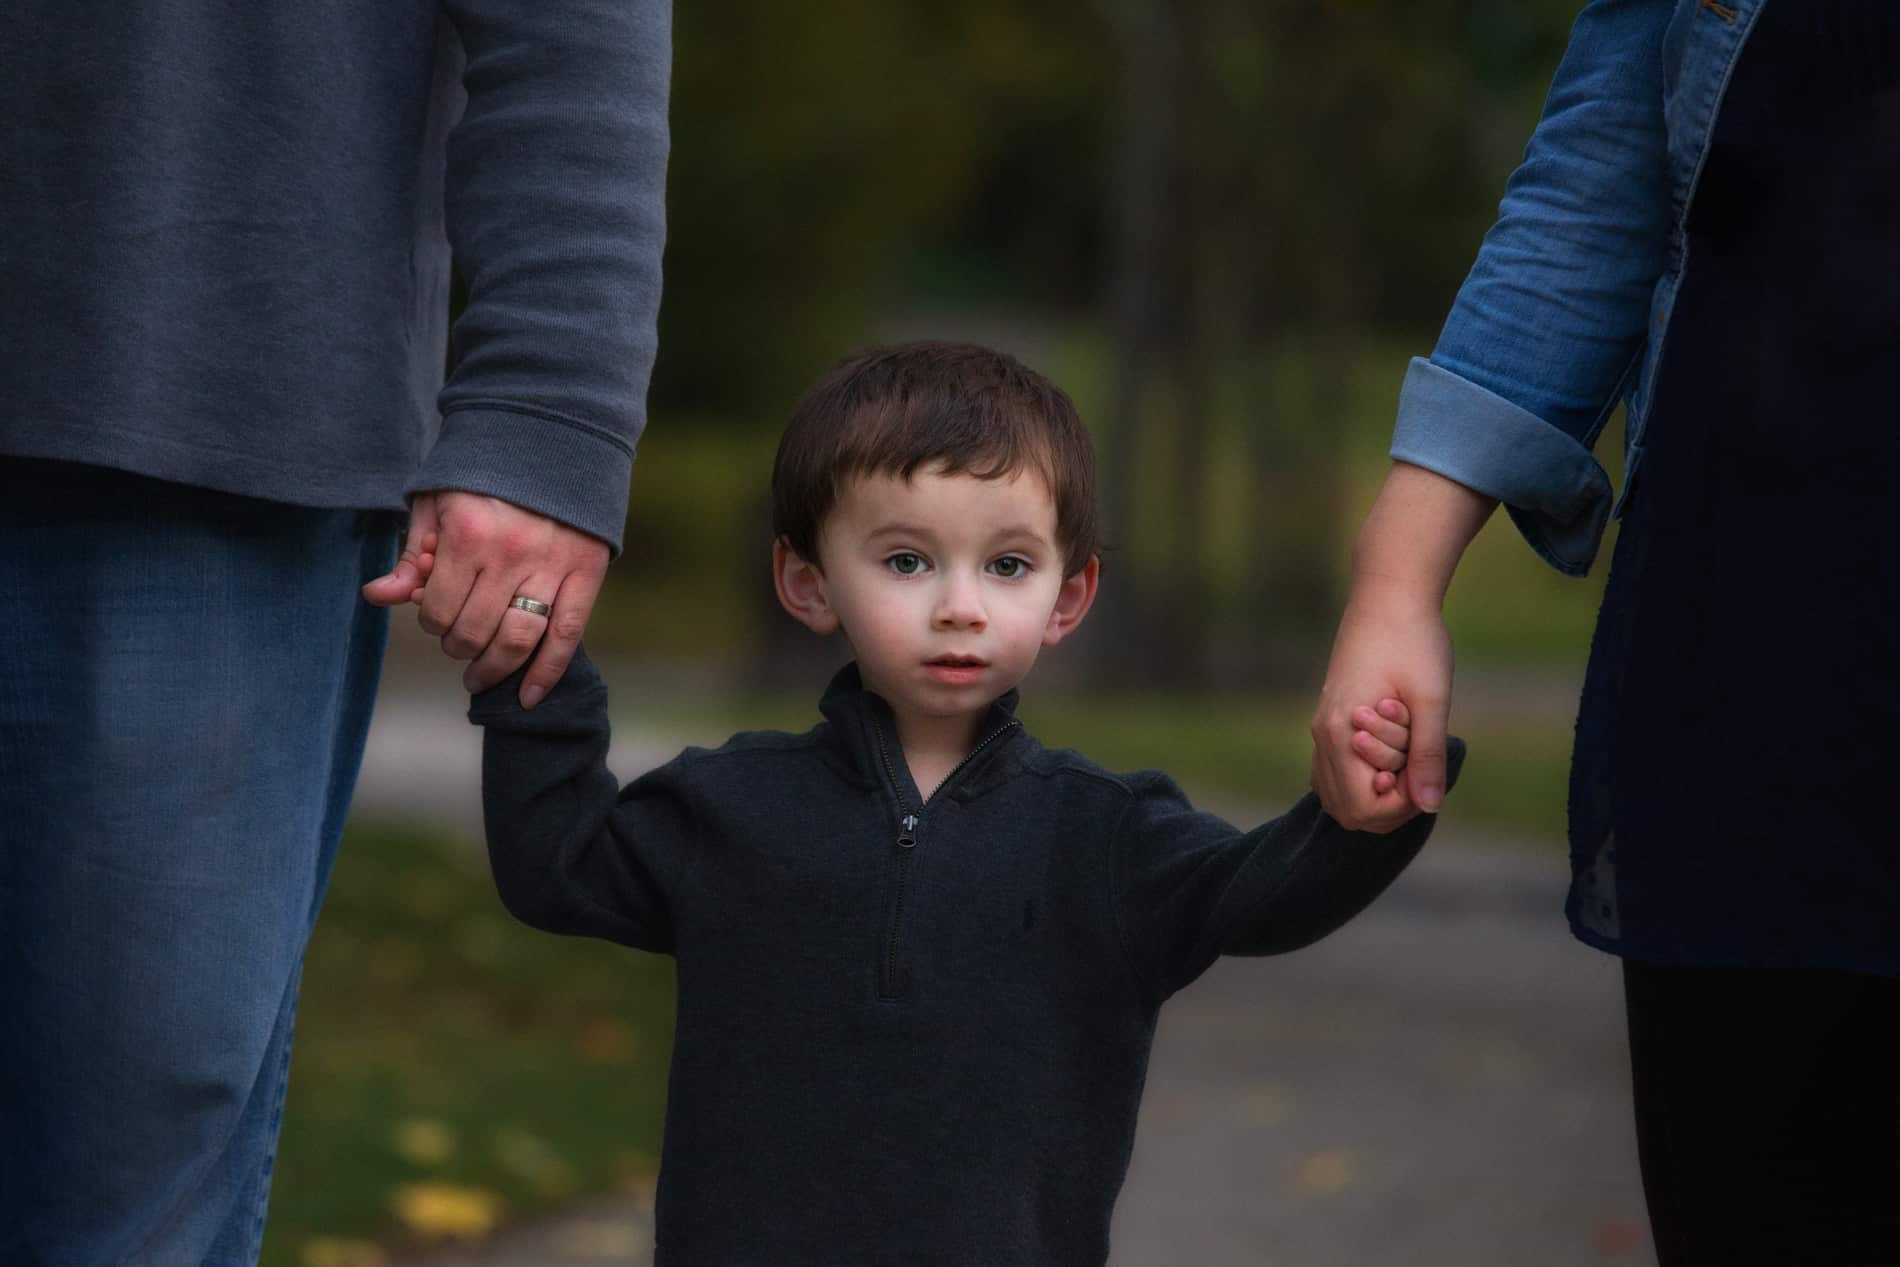 Little boy with parents at Wade Oval Park in Cleveland